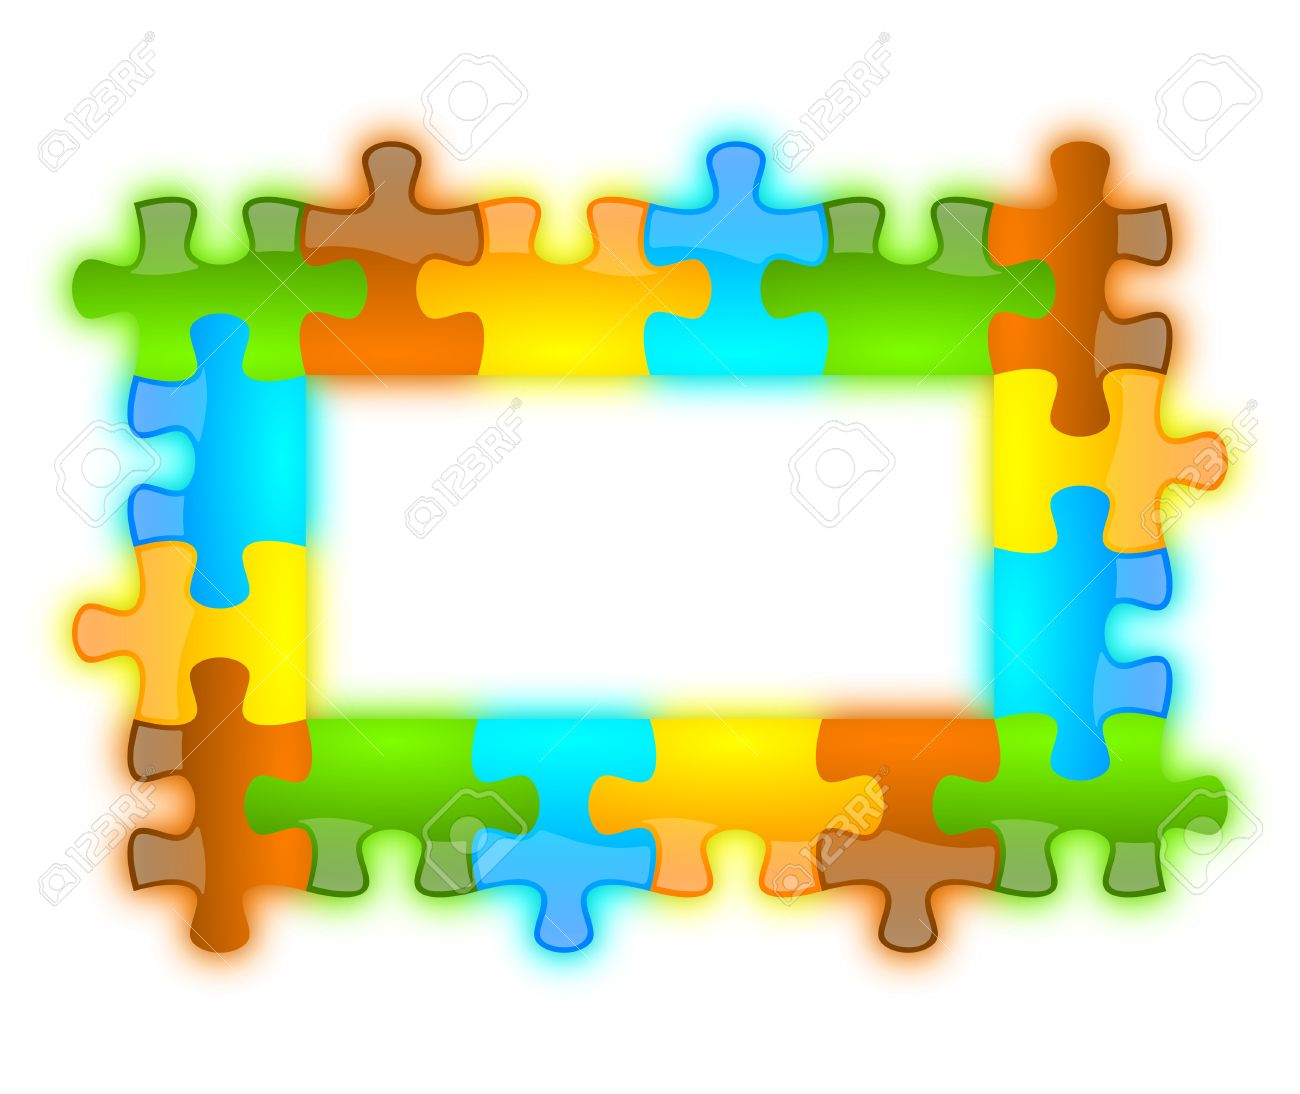 Colored And Jazzy Puzzle Frame Background 6 X 4 Format Stock Photo ...